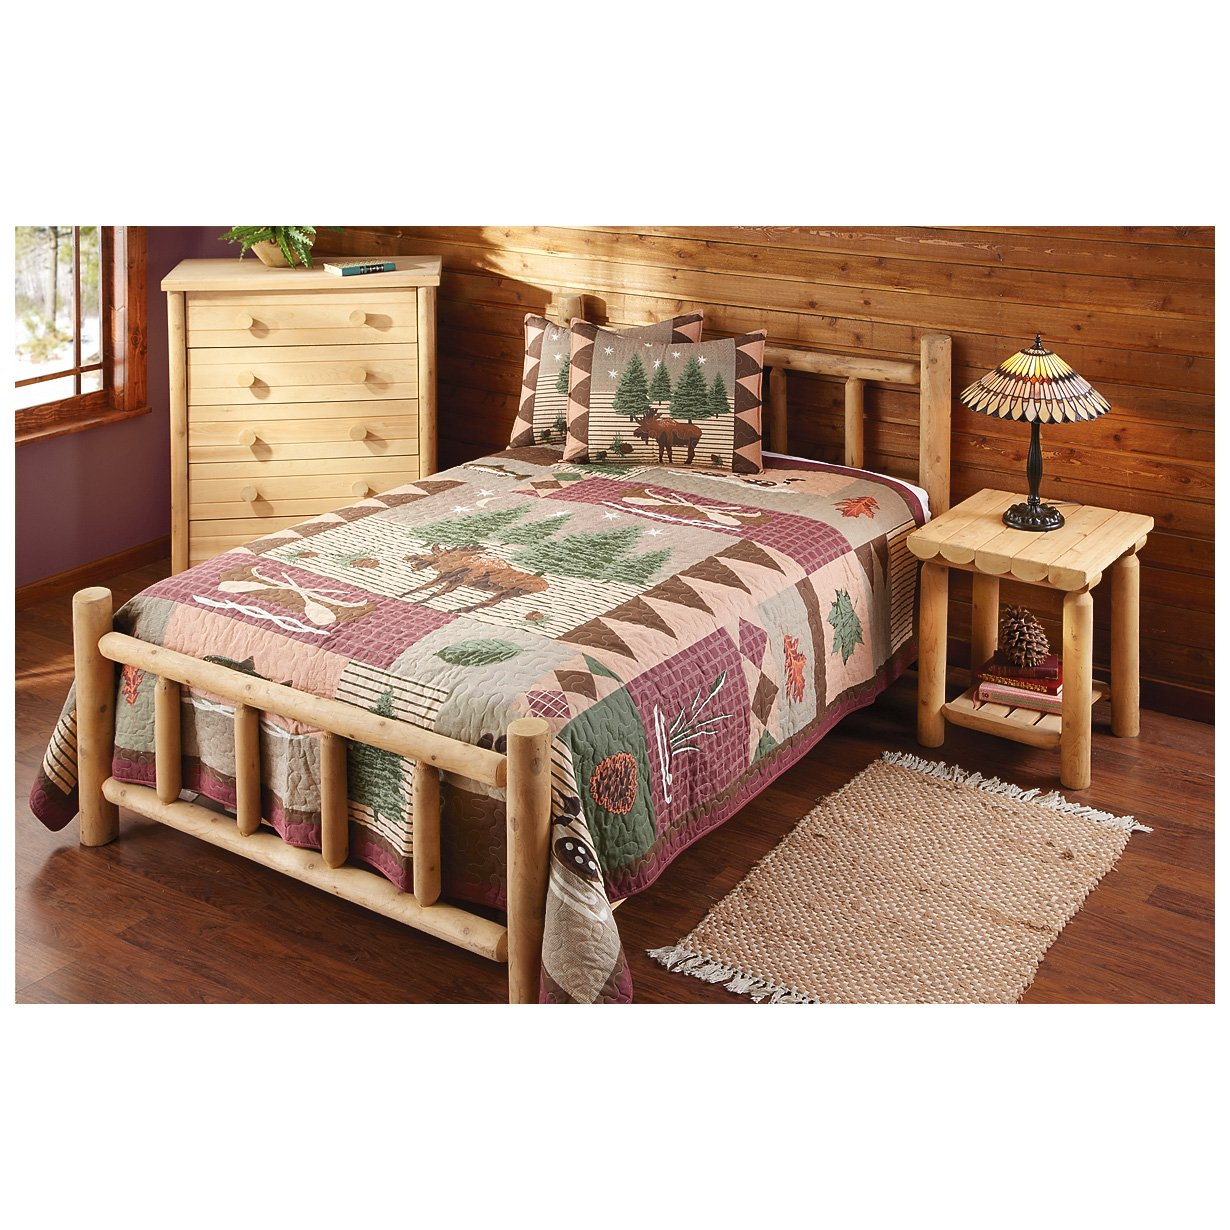 Amazon.com: CASTLECREEK Cedar Log Bed Queen: Kitchen & Dining